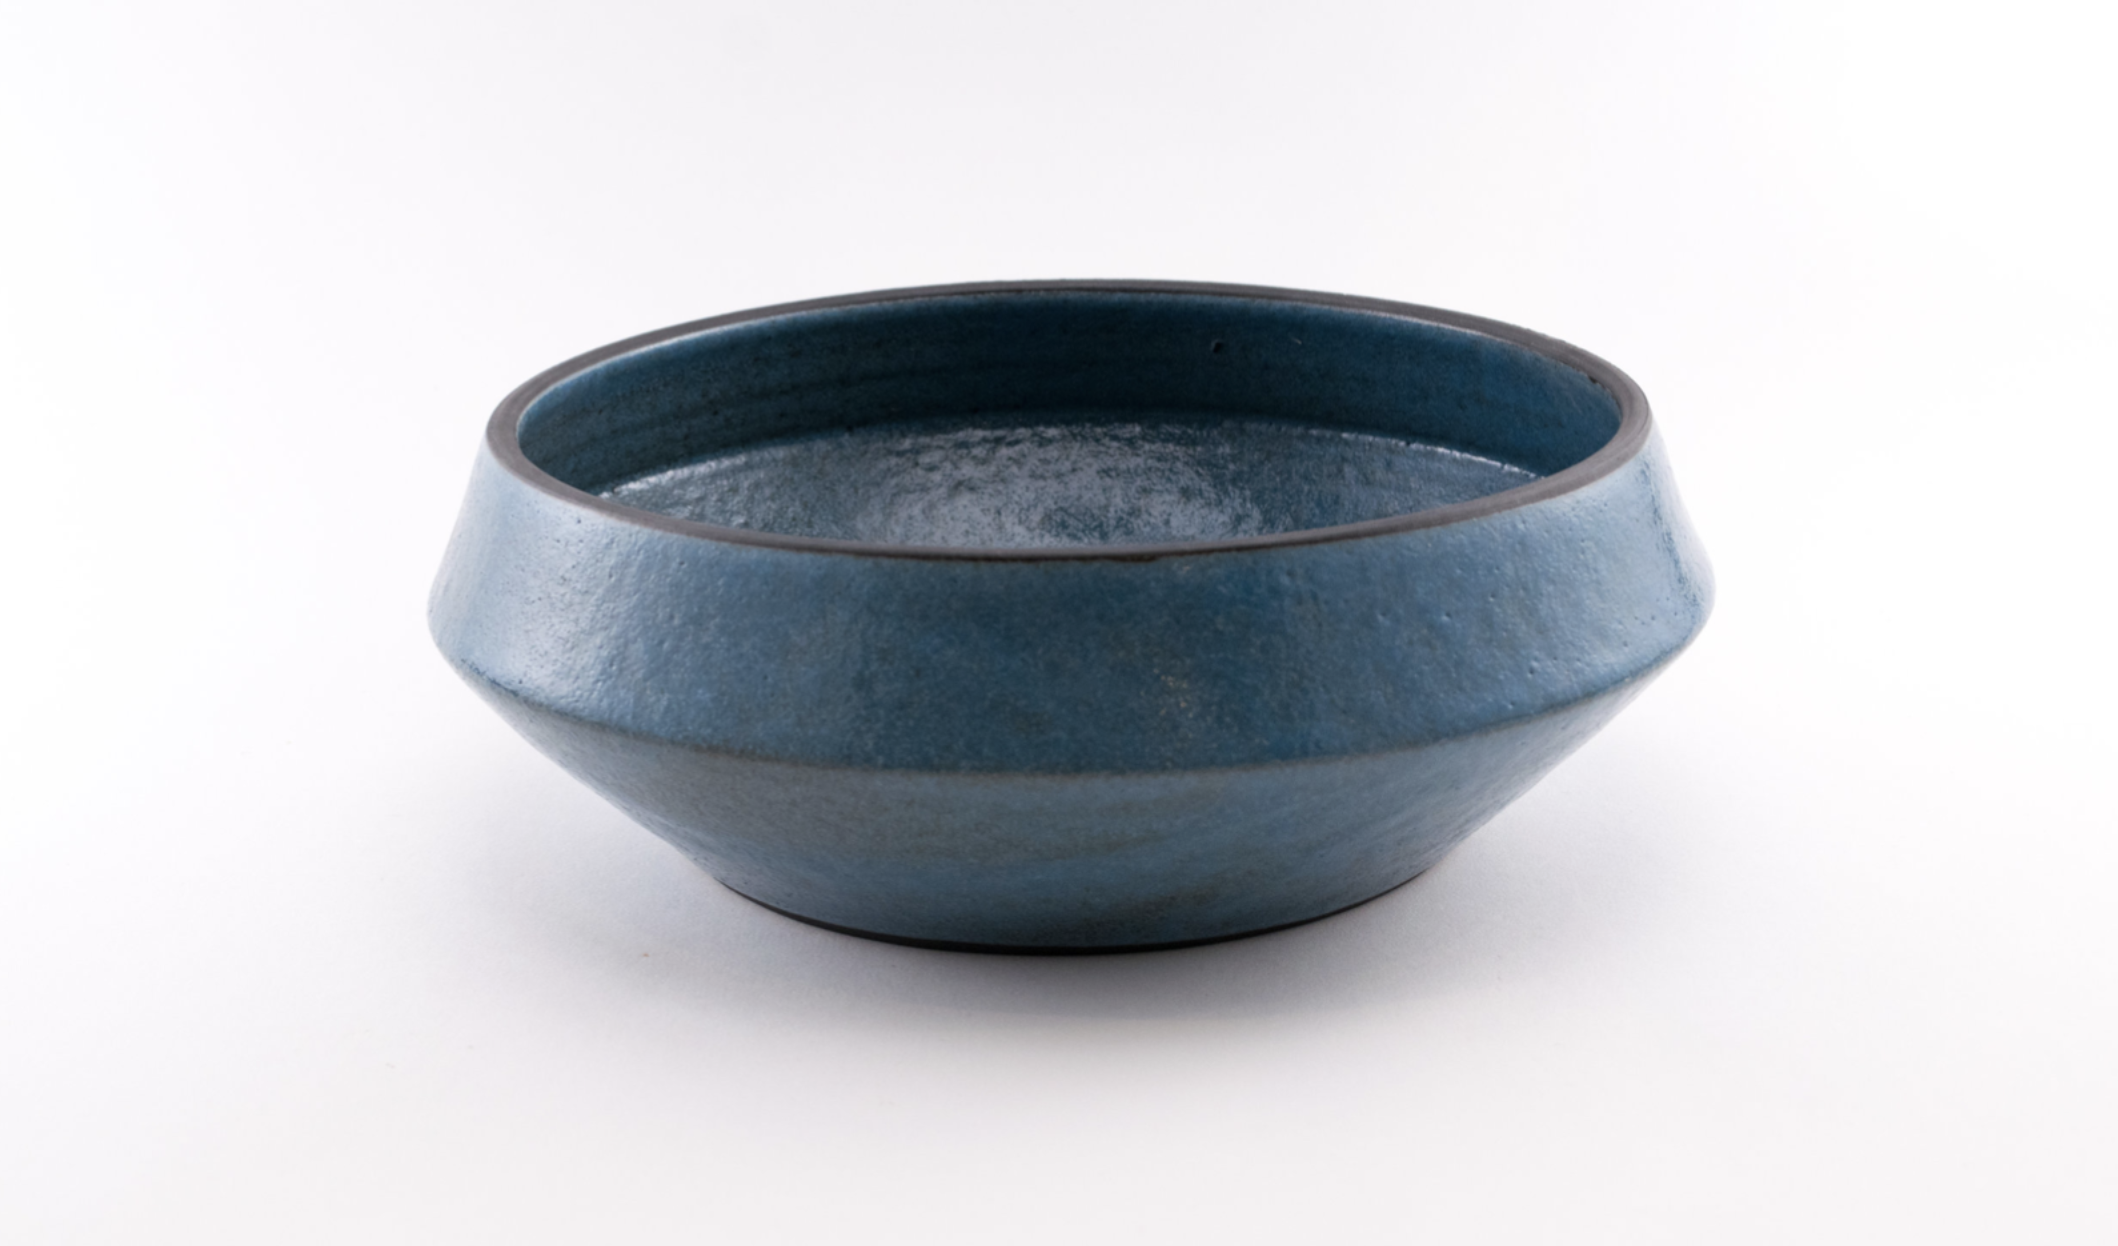 angeld serving bowl.png